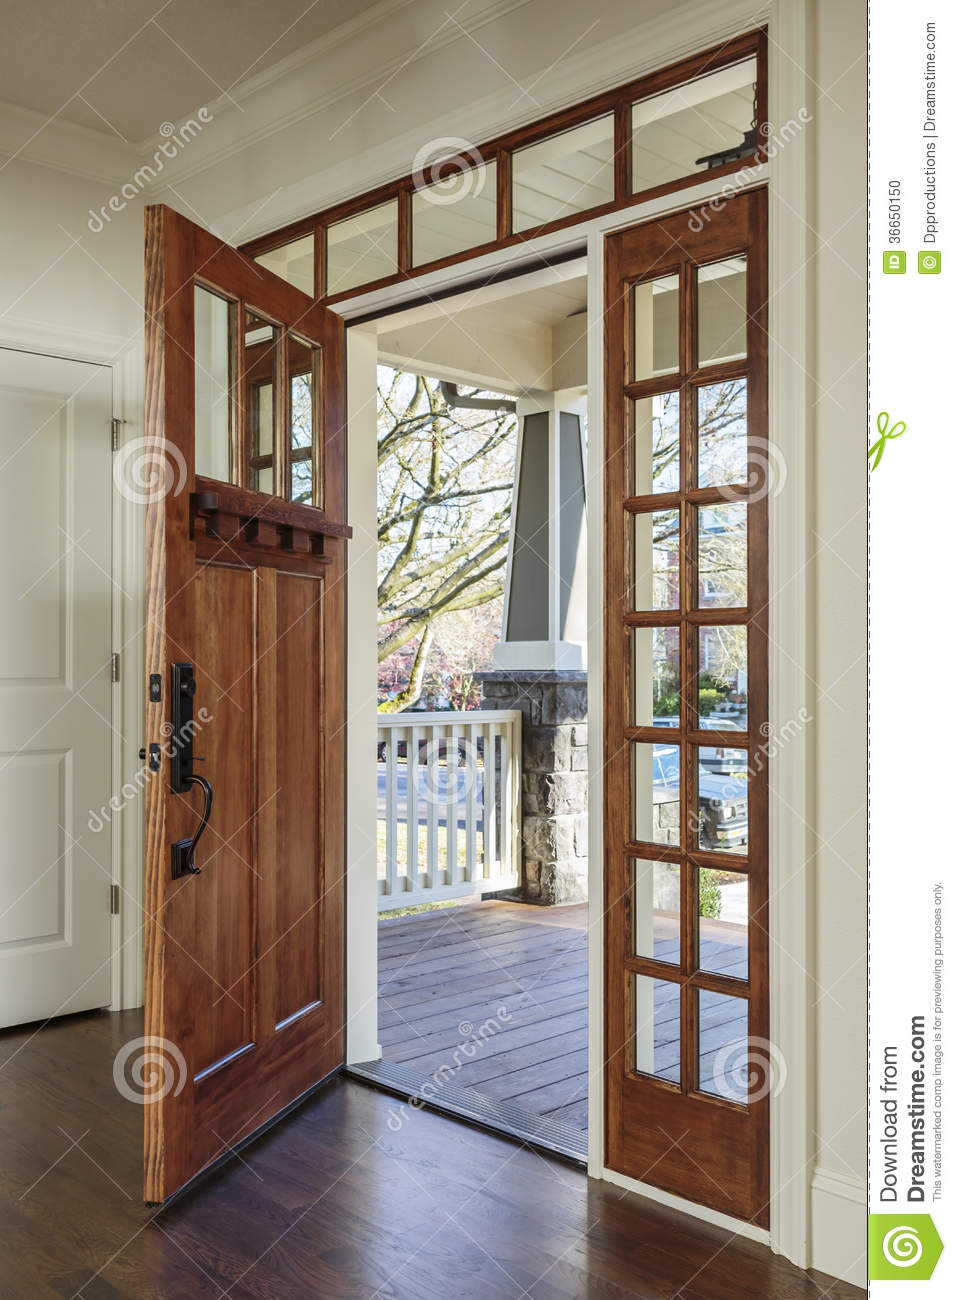 Interior Shot Of An Open Wooden Front Door Stock Photo Image Of Building Entrance 36650150